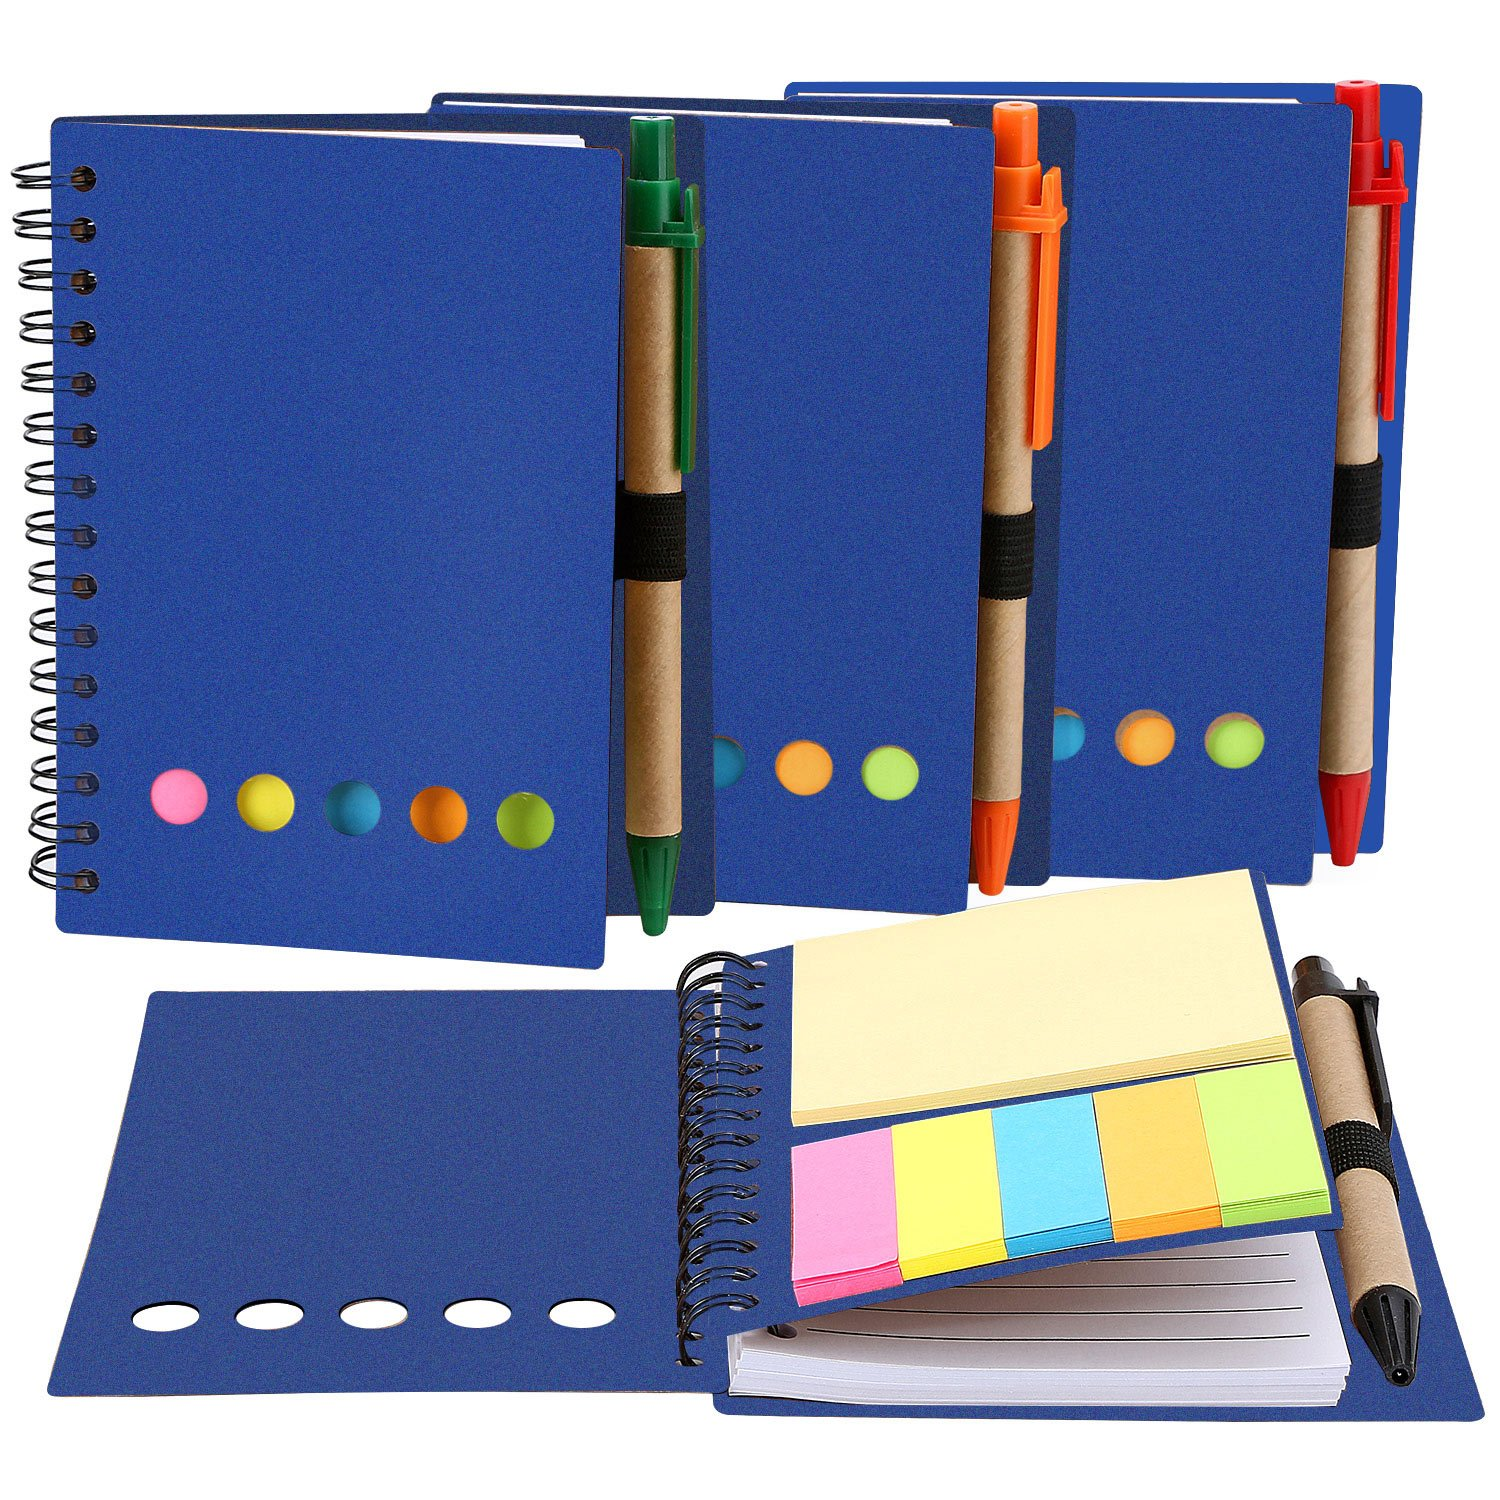 Mtlee 4 Pack Spiral Notebook Lined Notepad with Pen in Holder and Sticky Notes, Page Marker Colored Index Tabs Flags (Blue Cover)